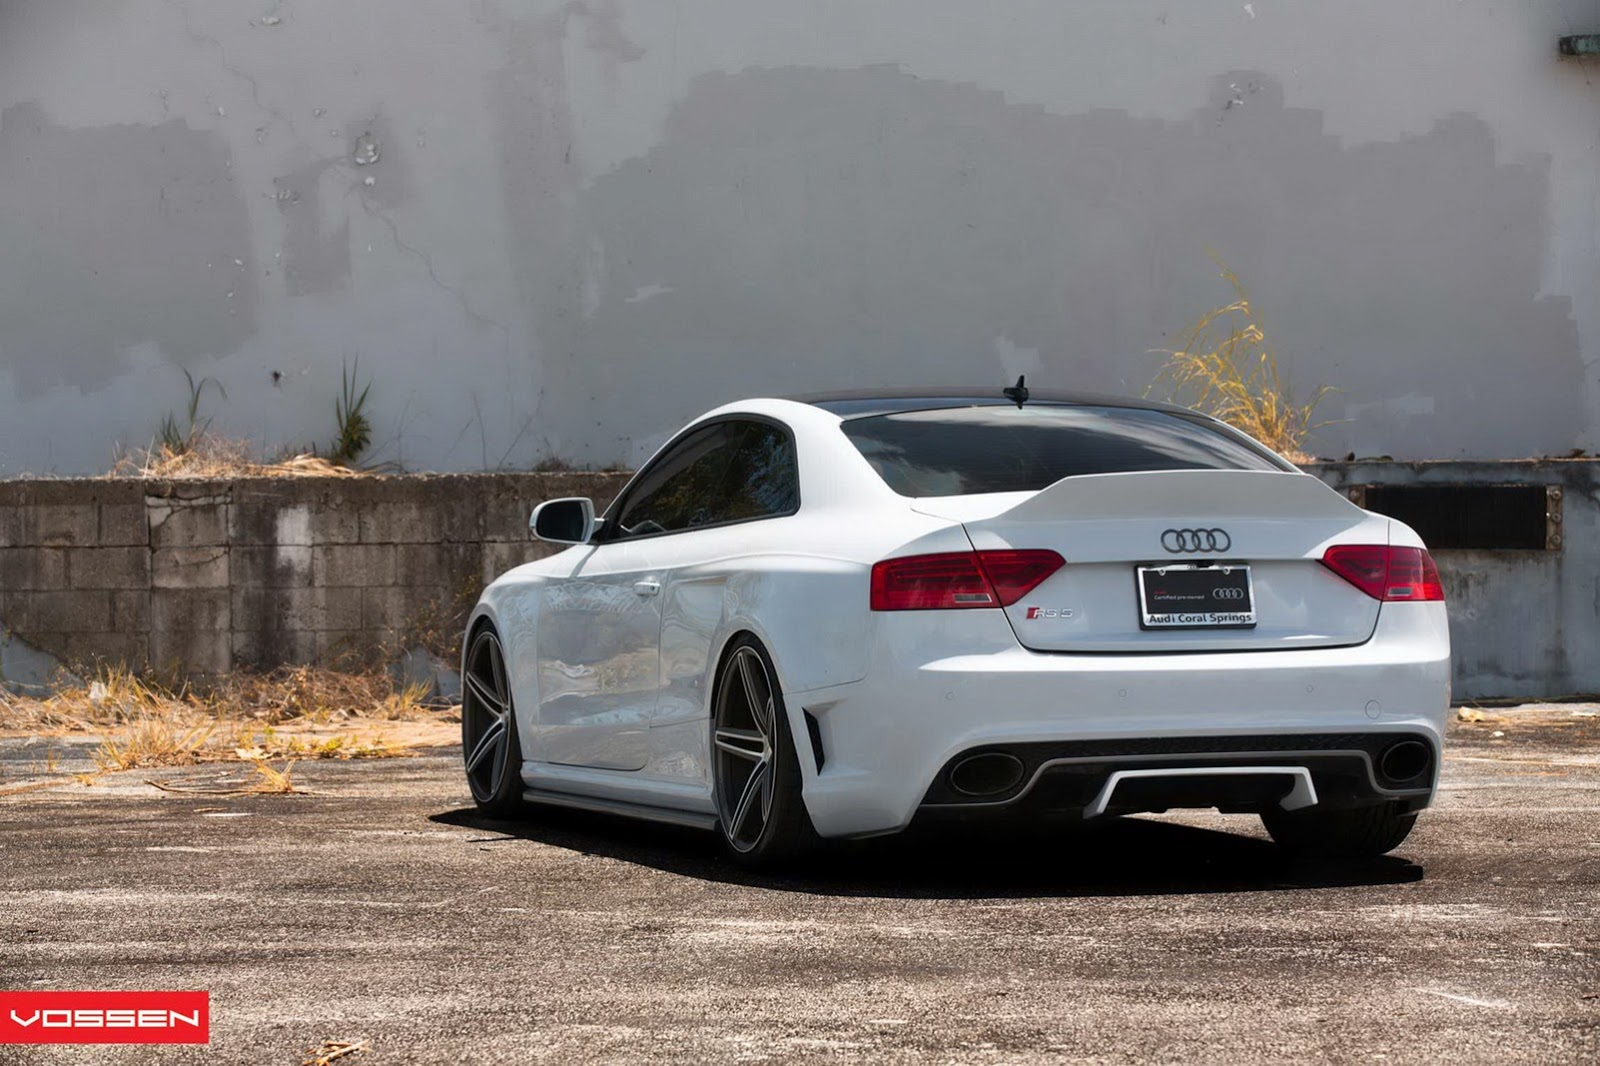 2013 audi rs5 by oss designs top speed 2001 audi relay diagram 2013 audi rs5 by oss designs top speed